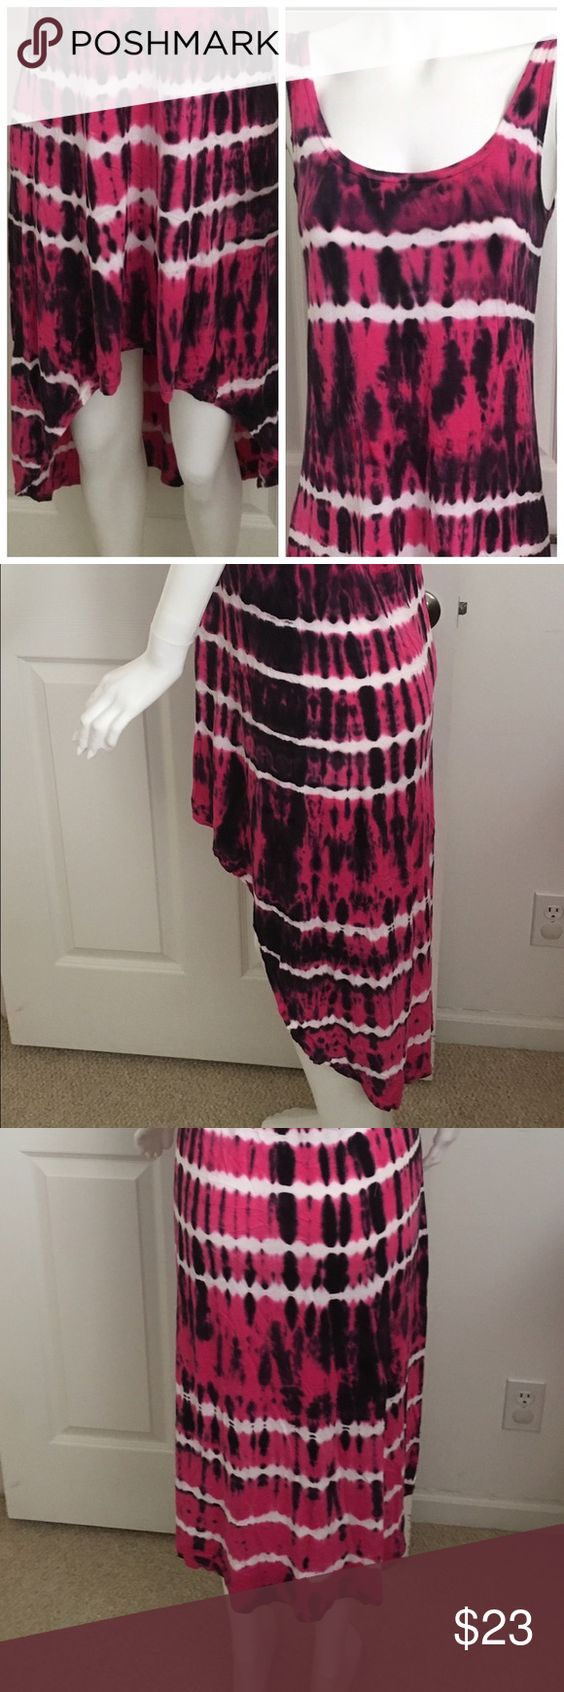 """Hard Tail sleeveless tie dye knit dress size S/M Hard Tail sleeveless tie dye knit dress size S/M. The tags are missing but it fits a small to medium. Here are the exact measurements. Armpit to armpit measures 16"""" lying flat. Waist measures 17"""" lying flat. Hips measure 18.5"""" lying flat. Asymmetrical hemline that is shorter in the front and longer in the back. Colors include pink white and black. Hard Tail Dresses Asymmetrical"""